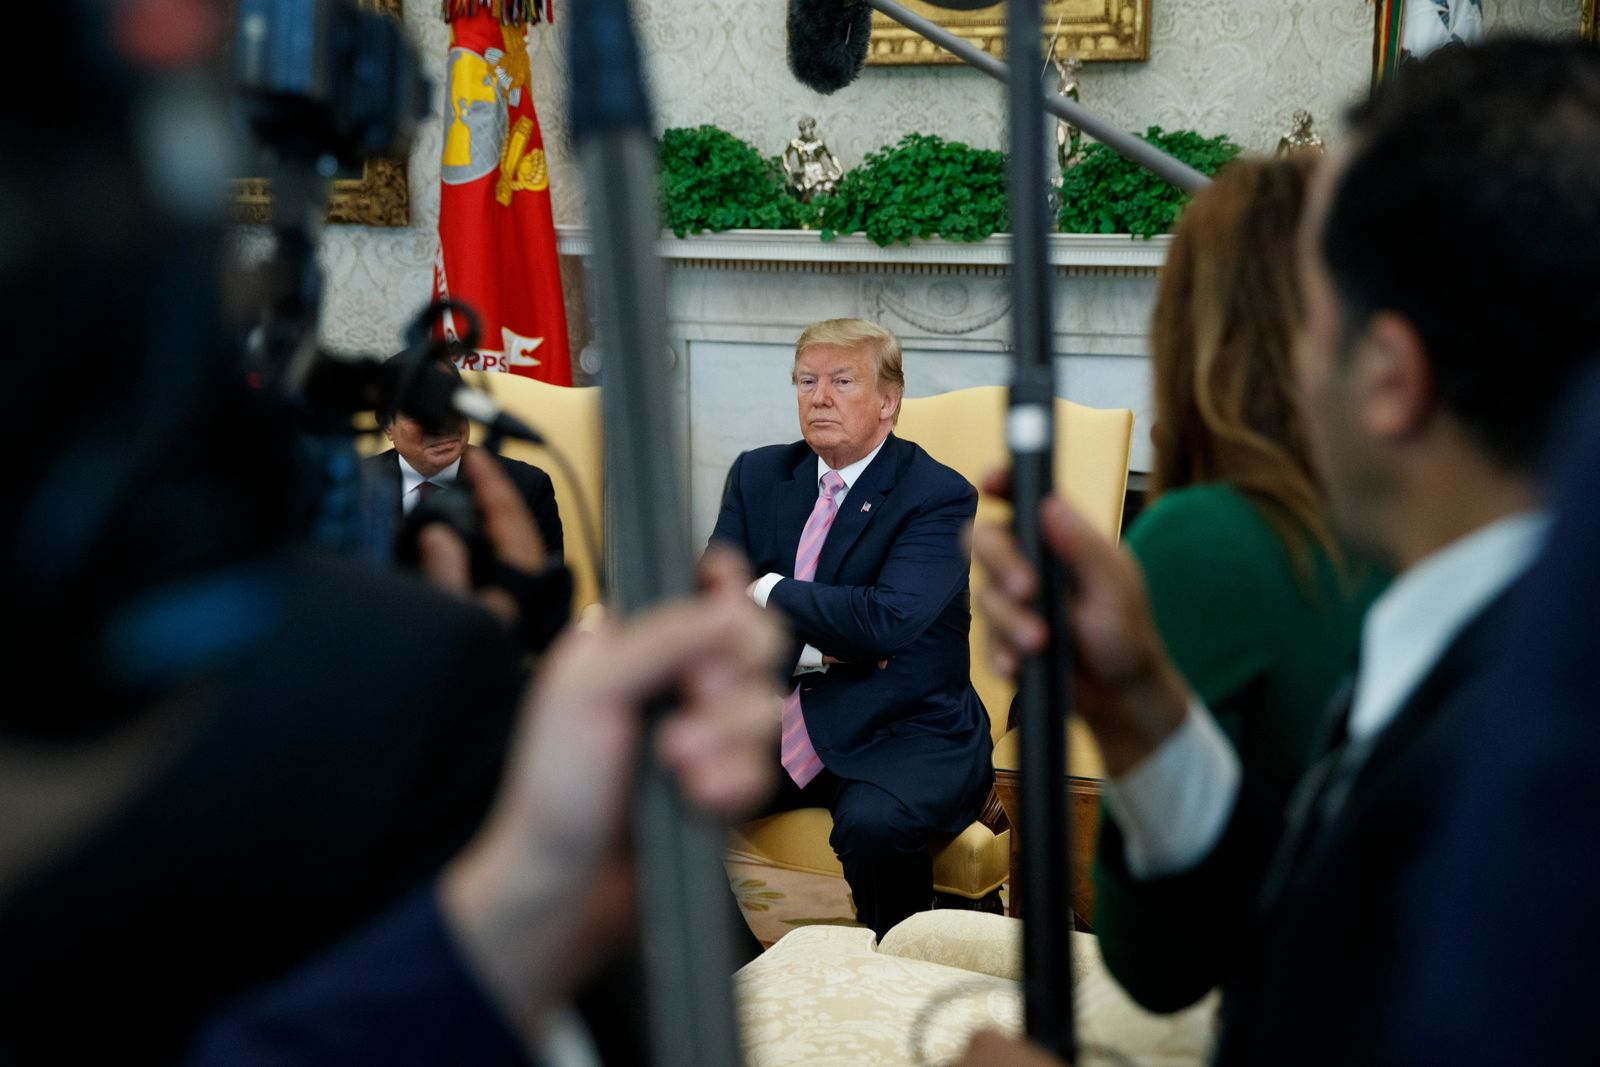 President Donald Trump pauses as he speaks during a meeting with Egyptian President Abdel Fattah el-Sisi in the Oval Office of the White House, Tuesday, April 9, 2019, in Washington. (AP Photo/Evan Vucci)